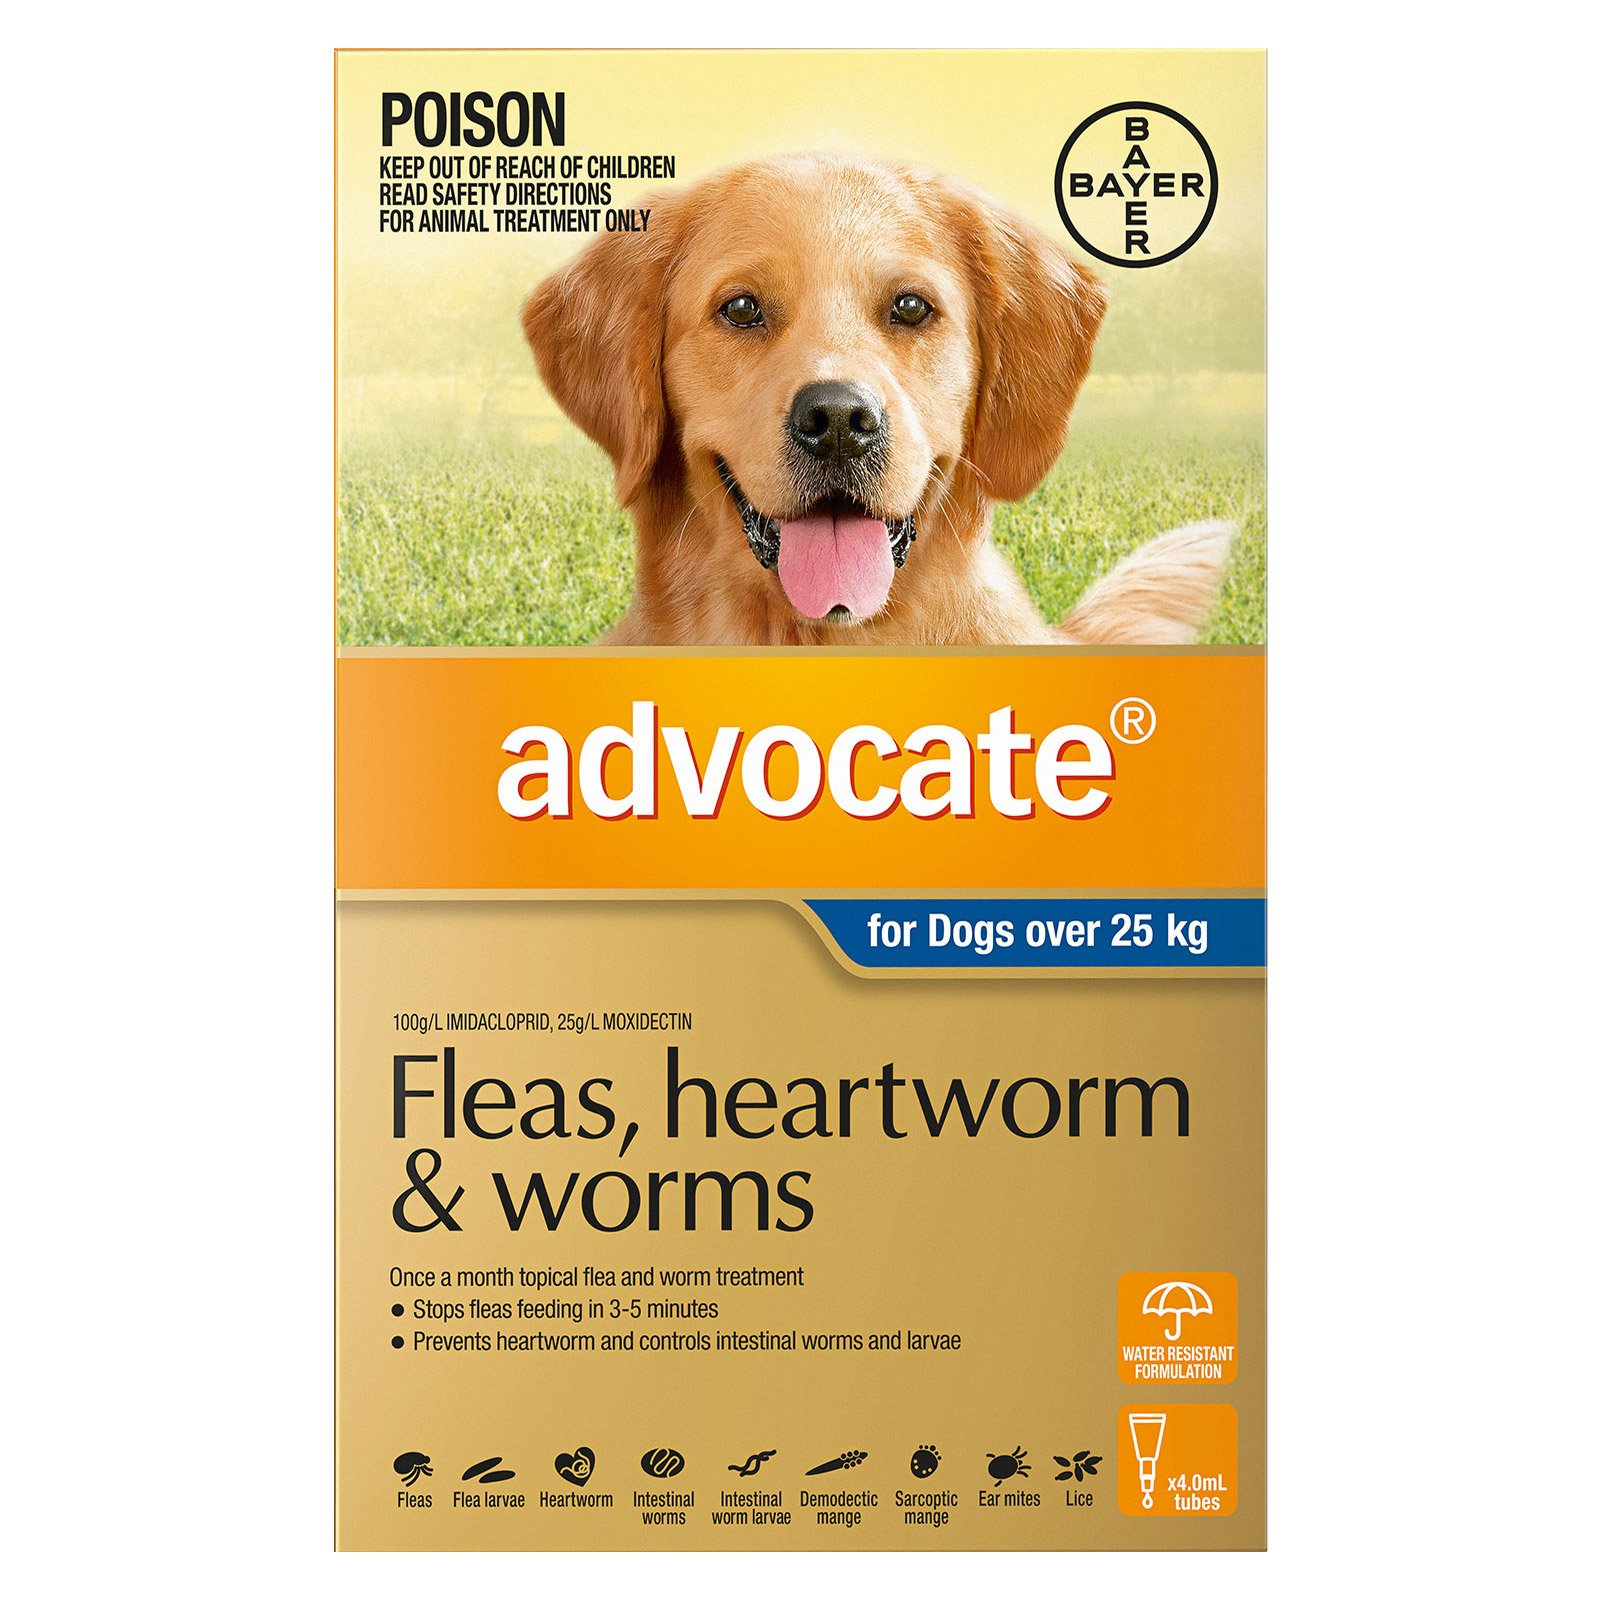 Advocate for Dogs Over 25 Kg (Extra Large Dogs) Blue